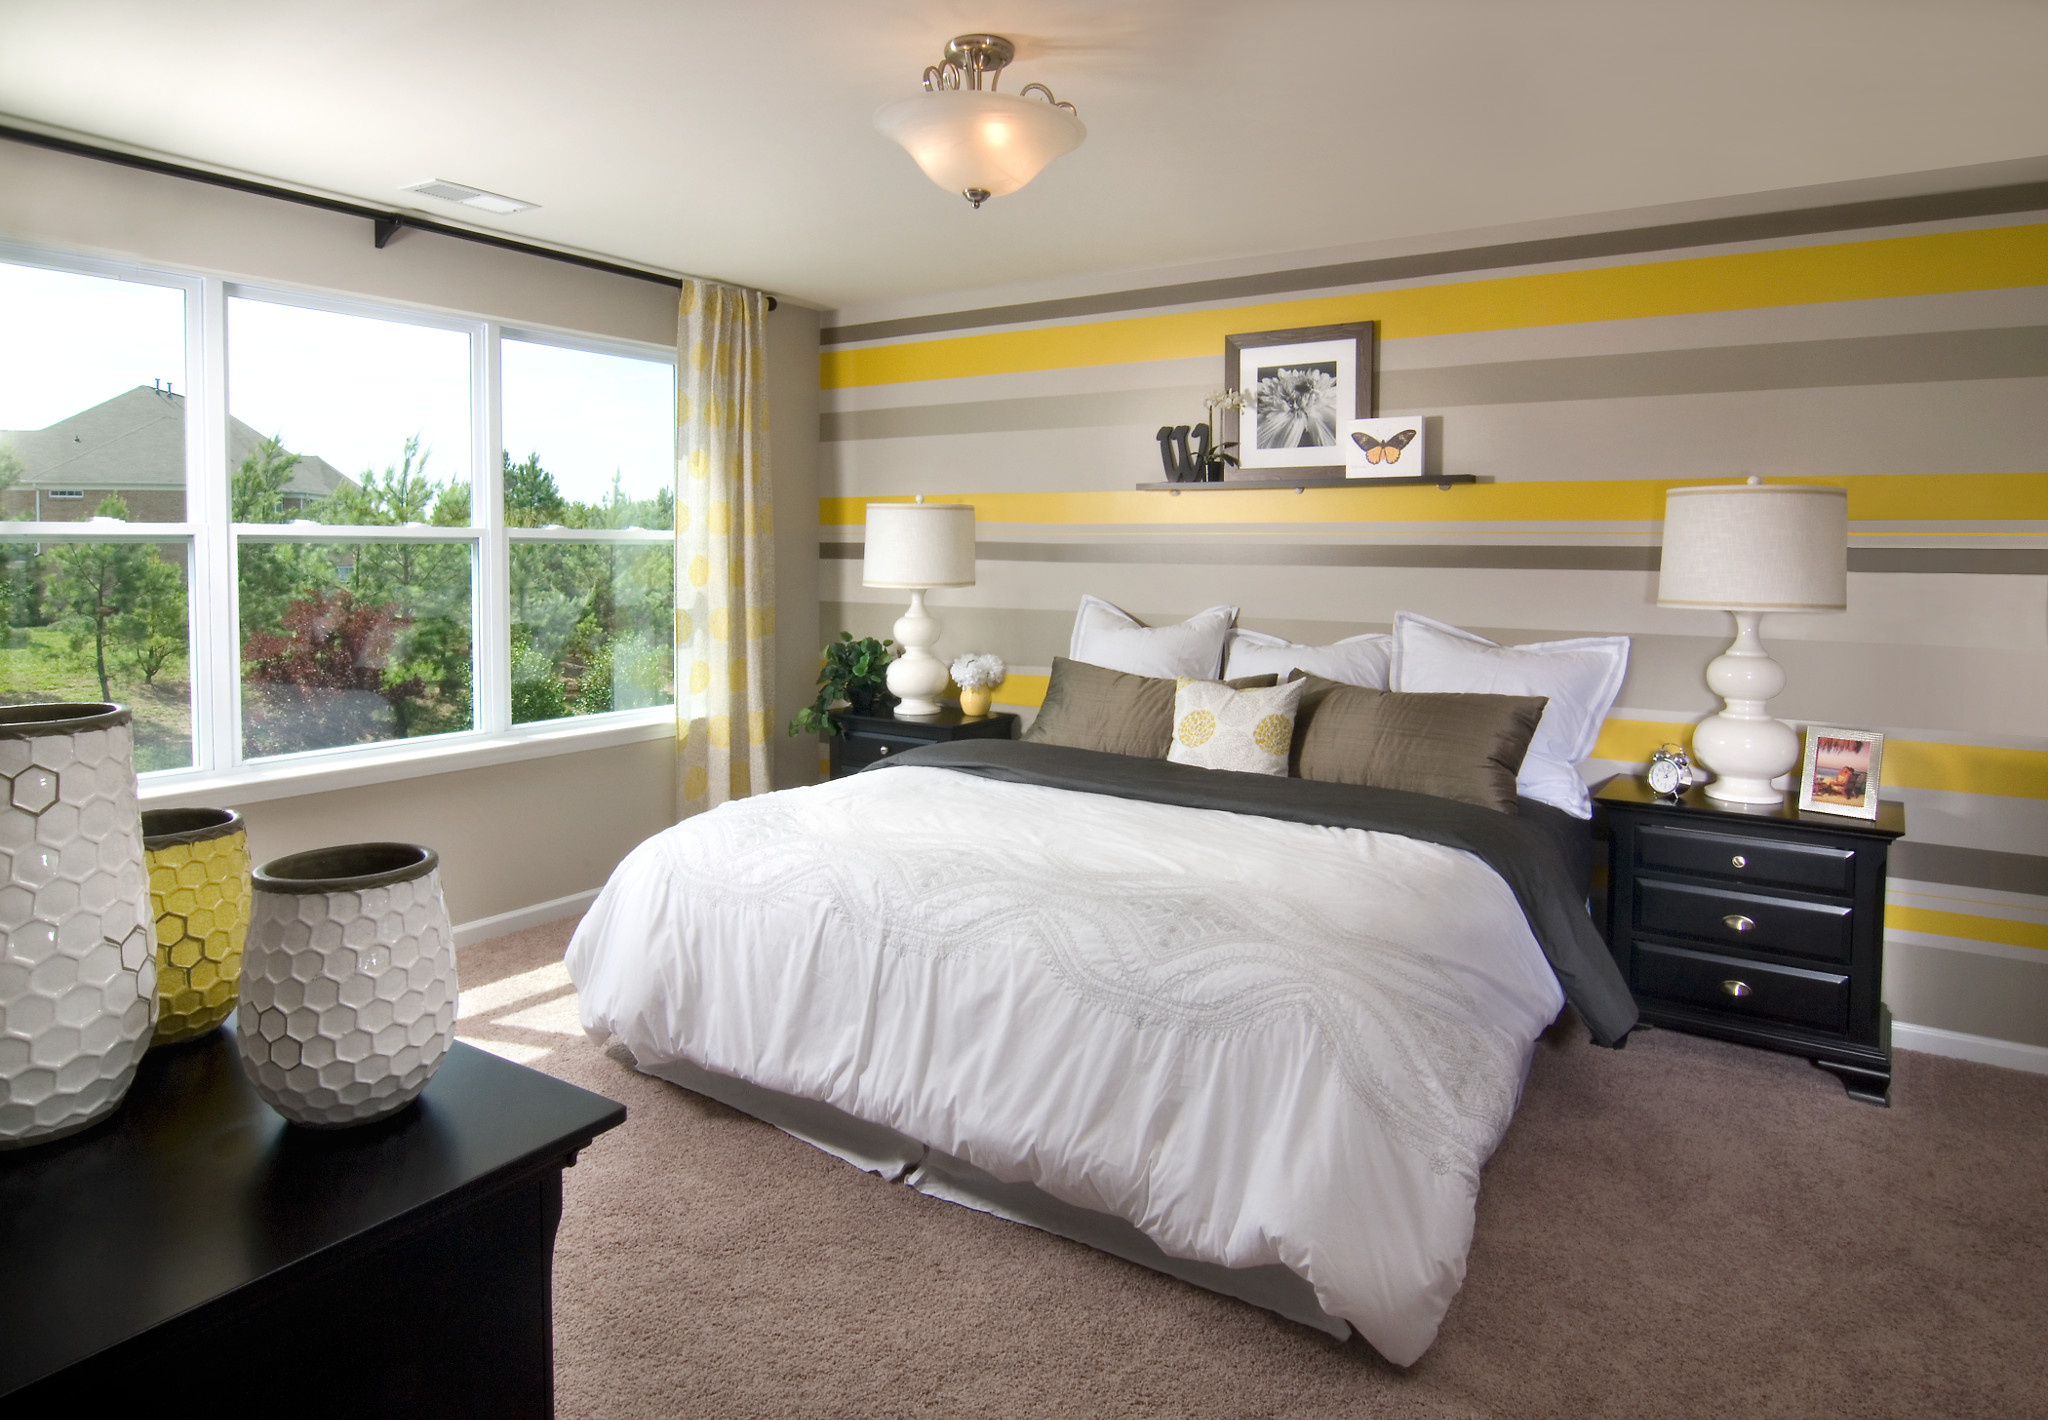 Master bedroom with yellow and gray accents and king sized bed